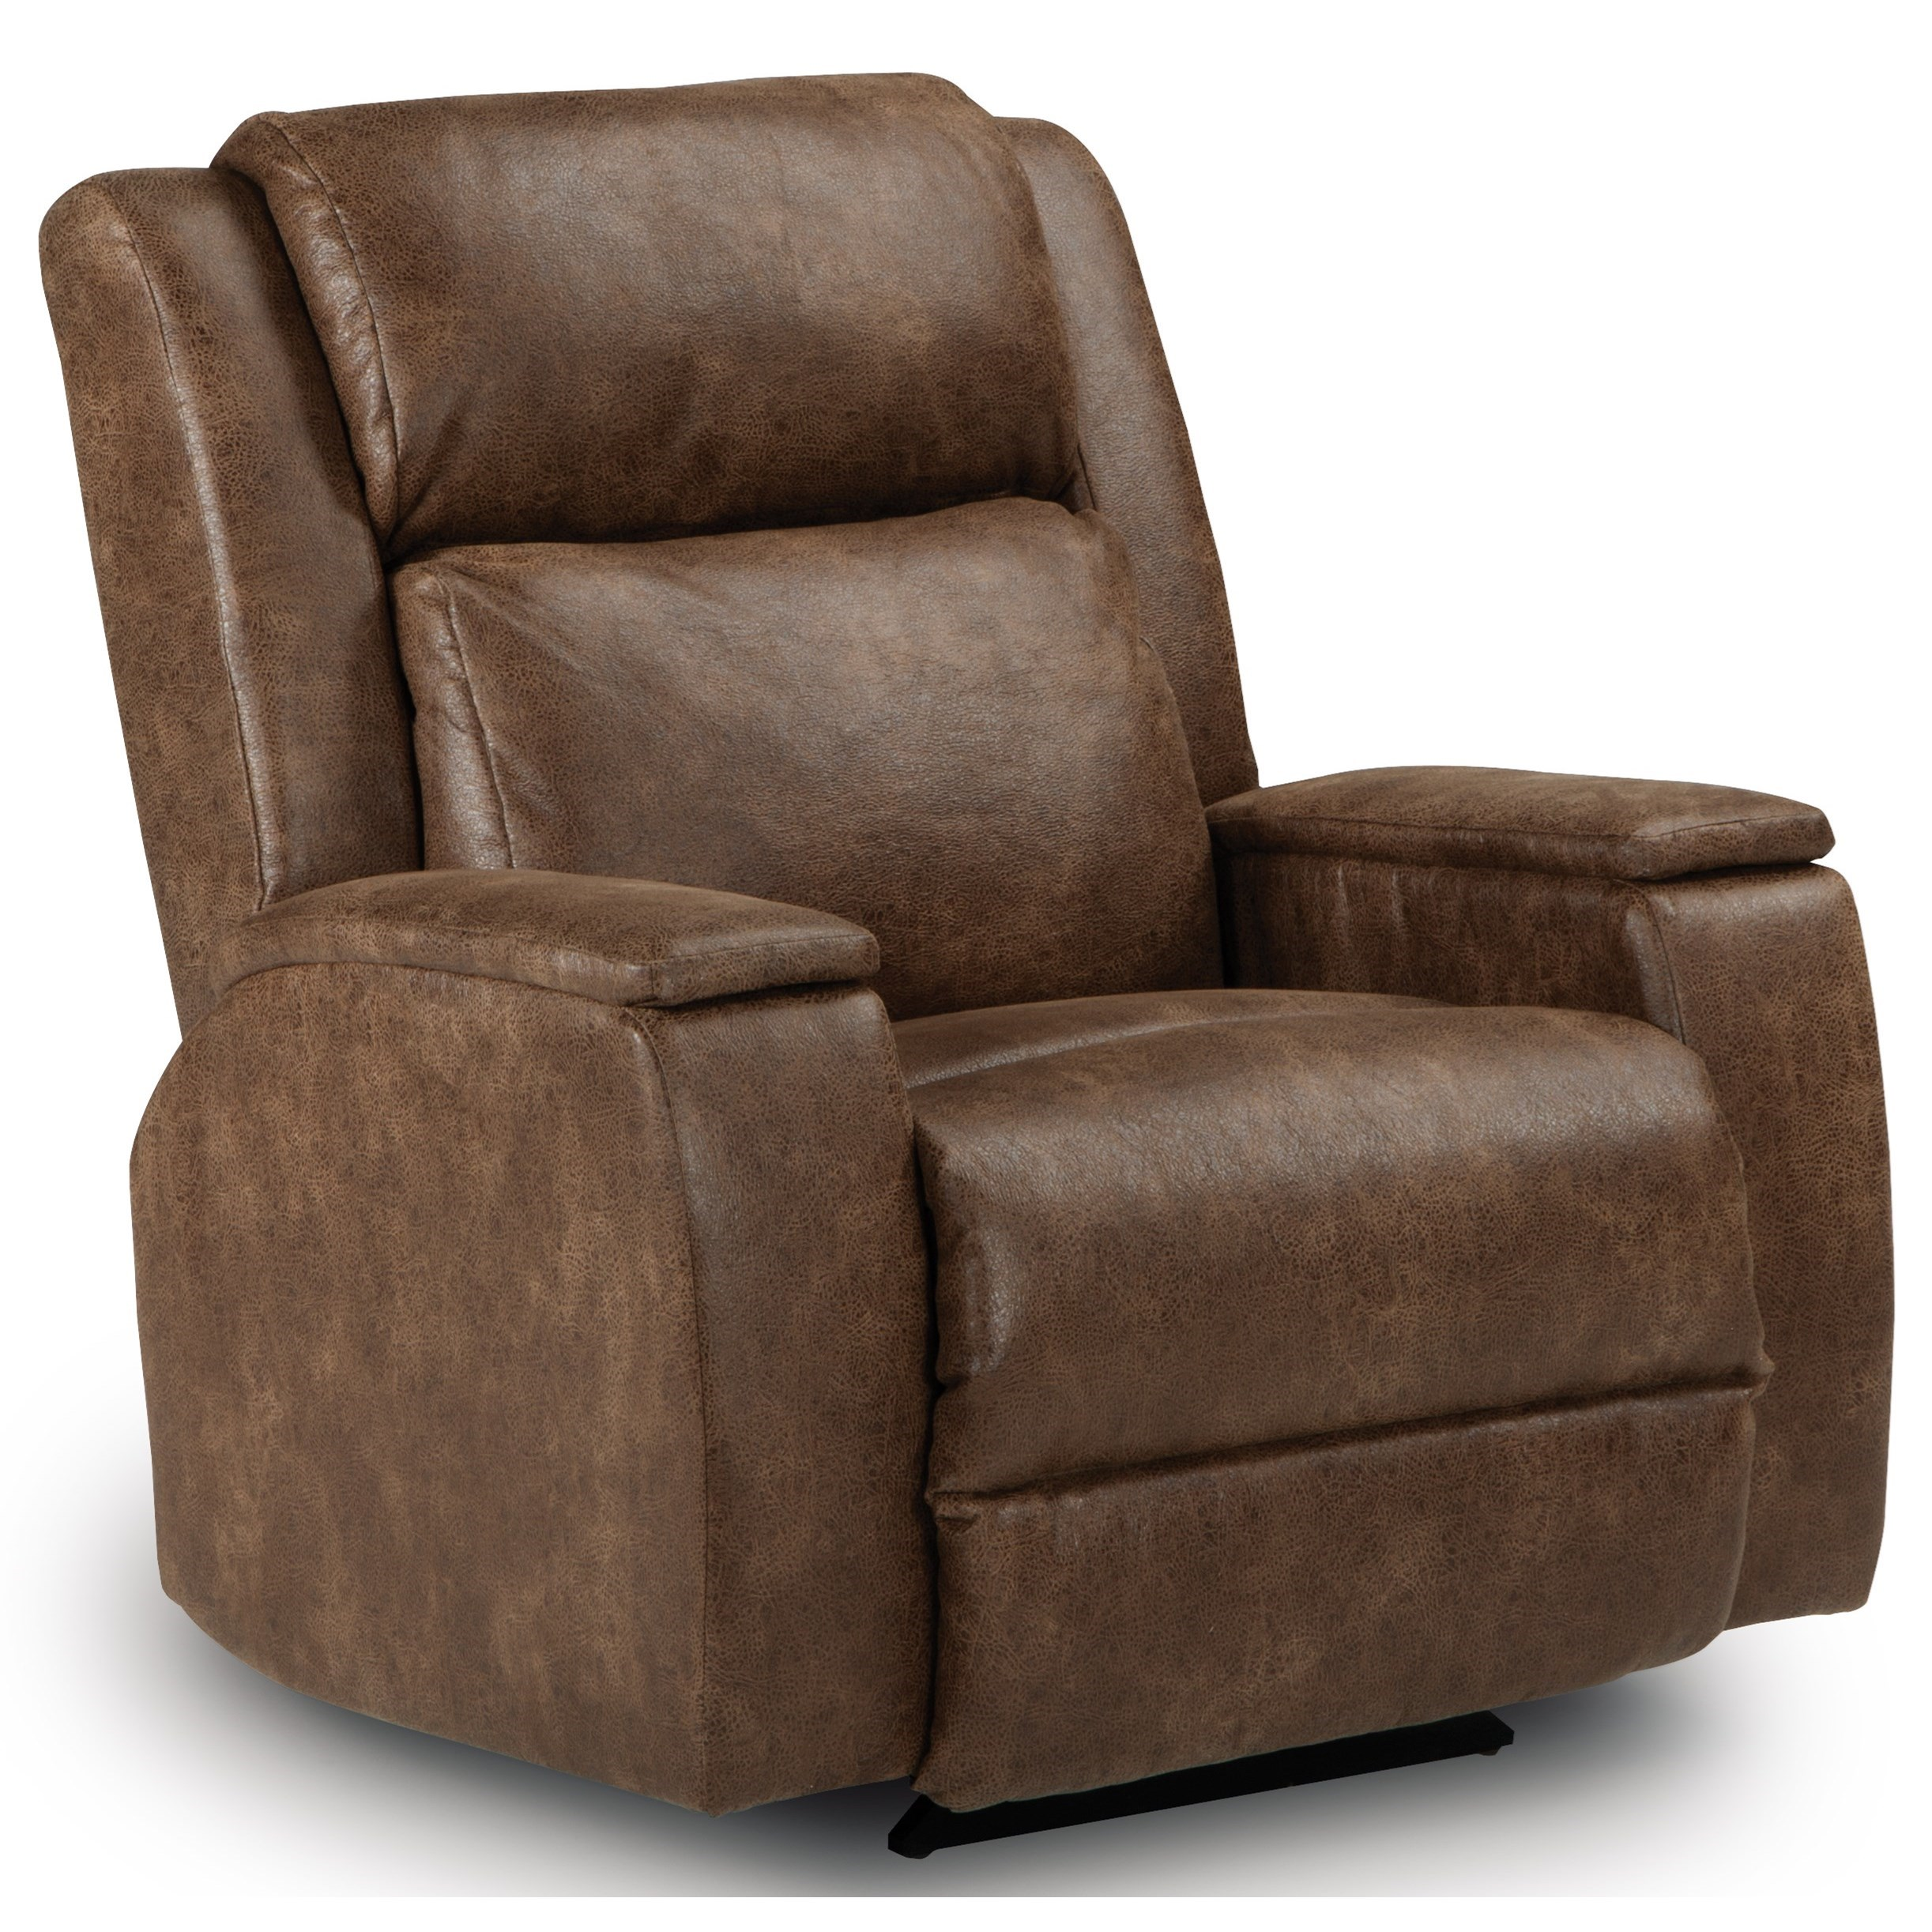 Lift Chairs Recliners Best Home Furnishings Medium Recliners Colton Power Lift